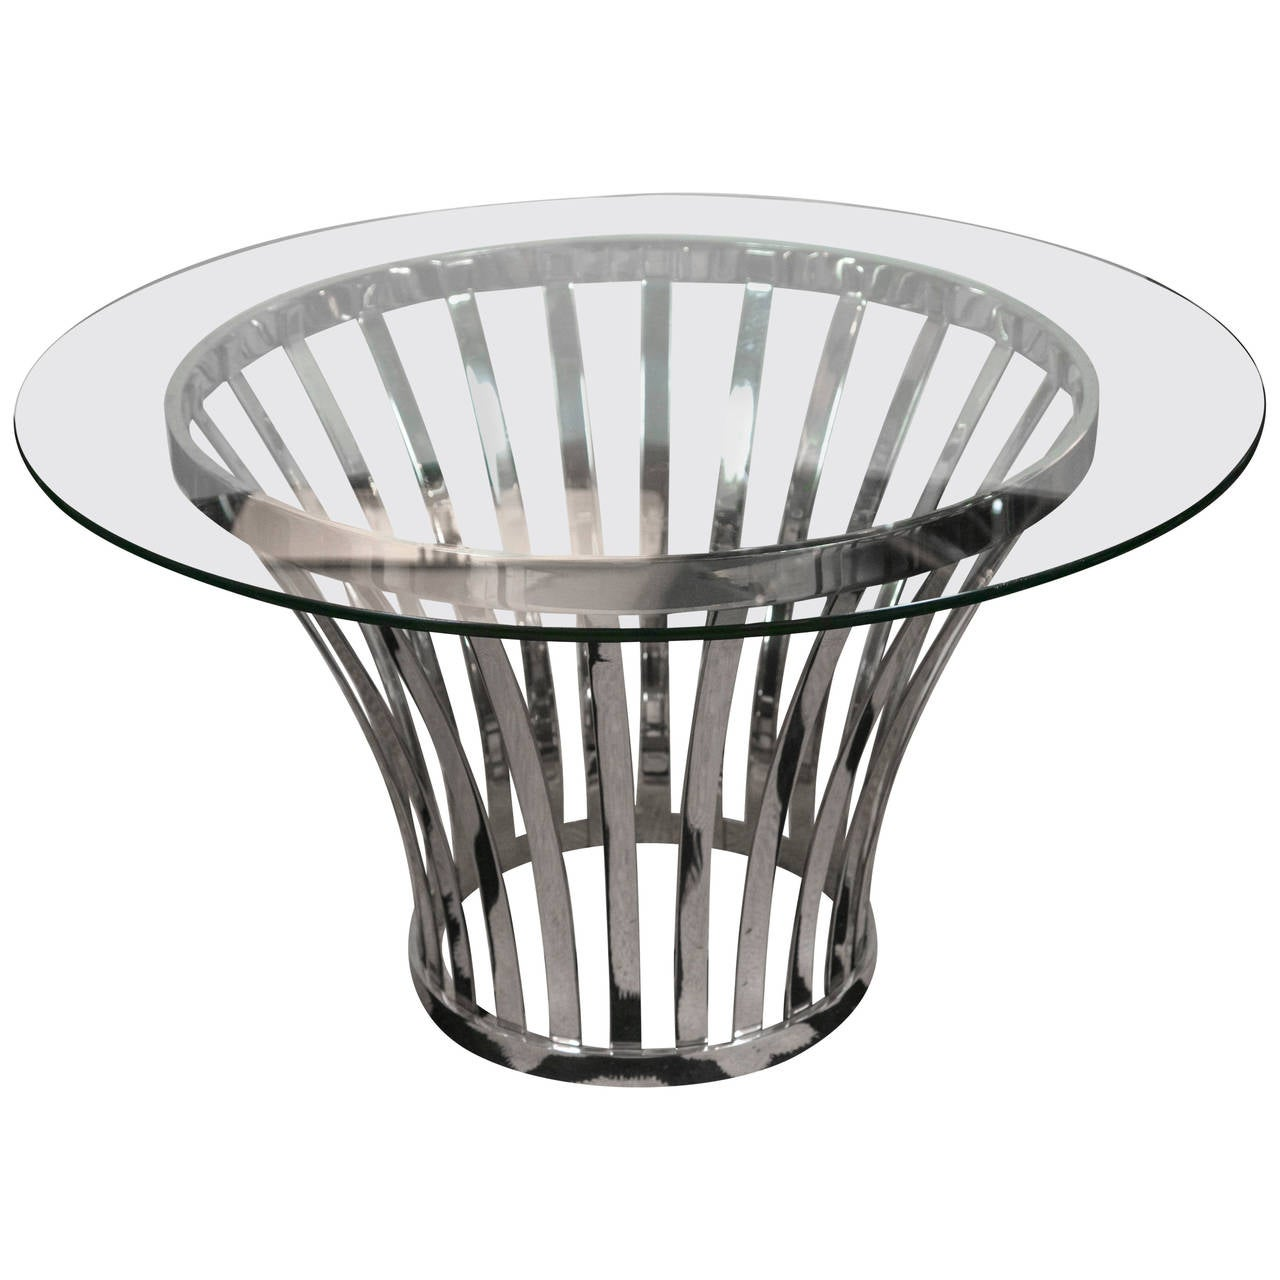 Mid century round glass and metal base coffee table at 1stdibs for Round glass top coffee table with metal base